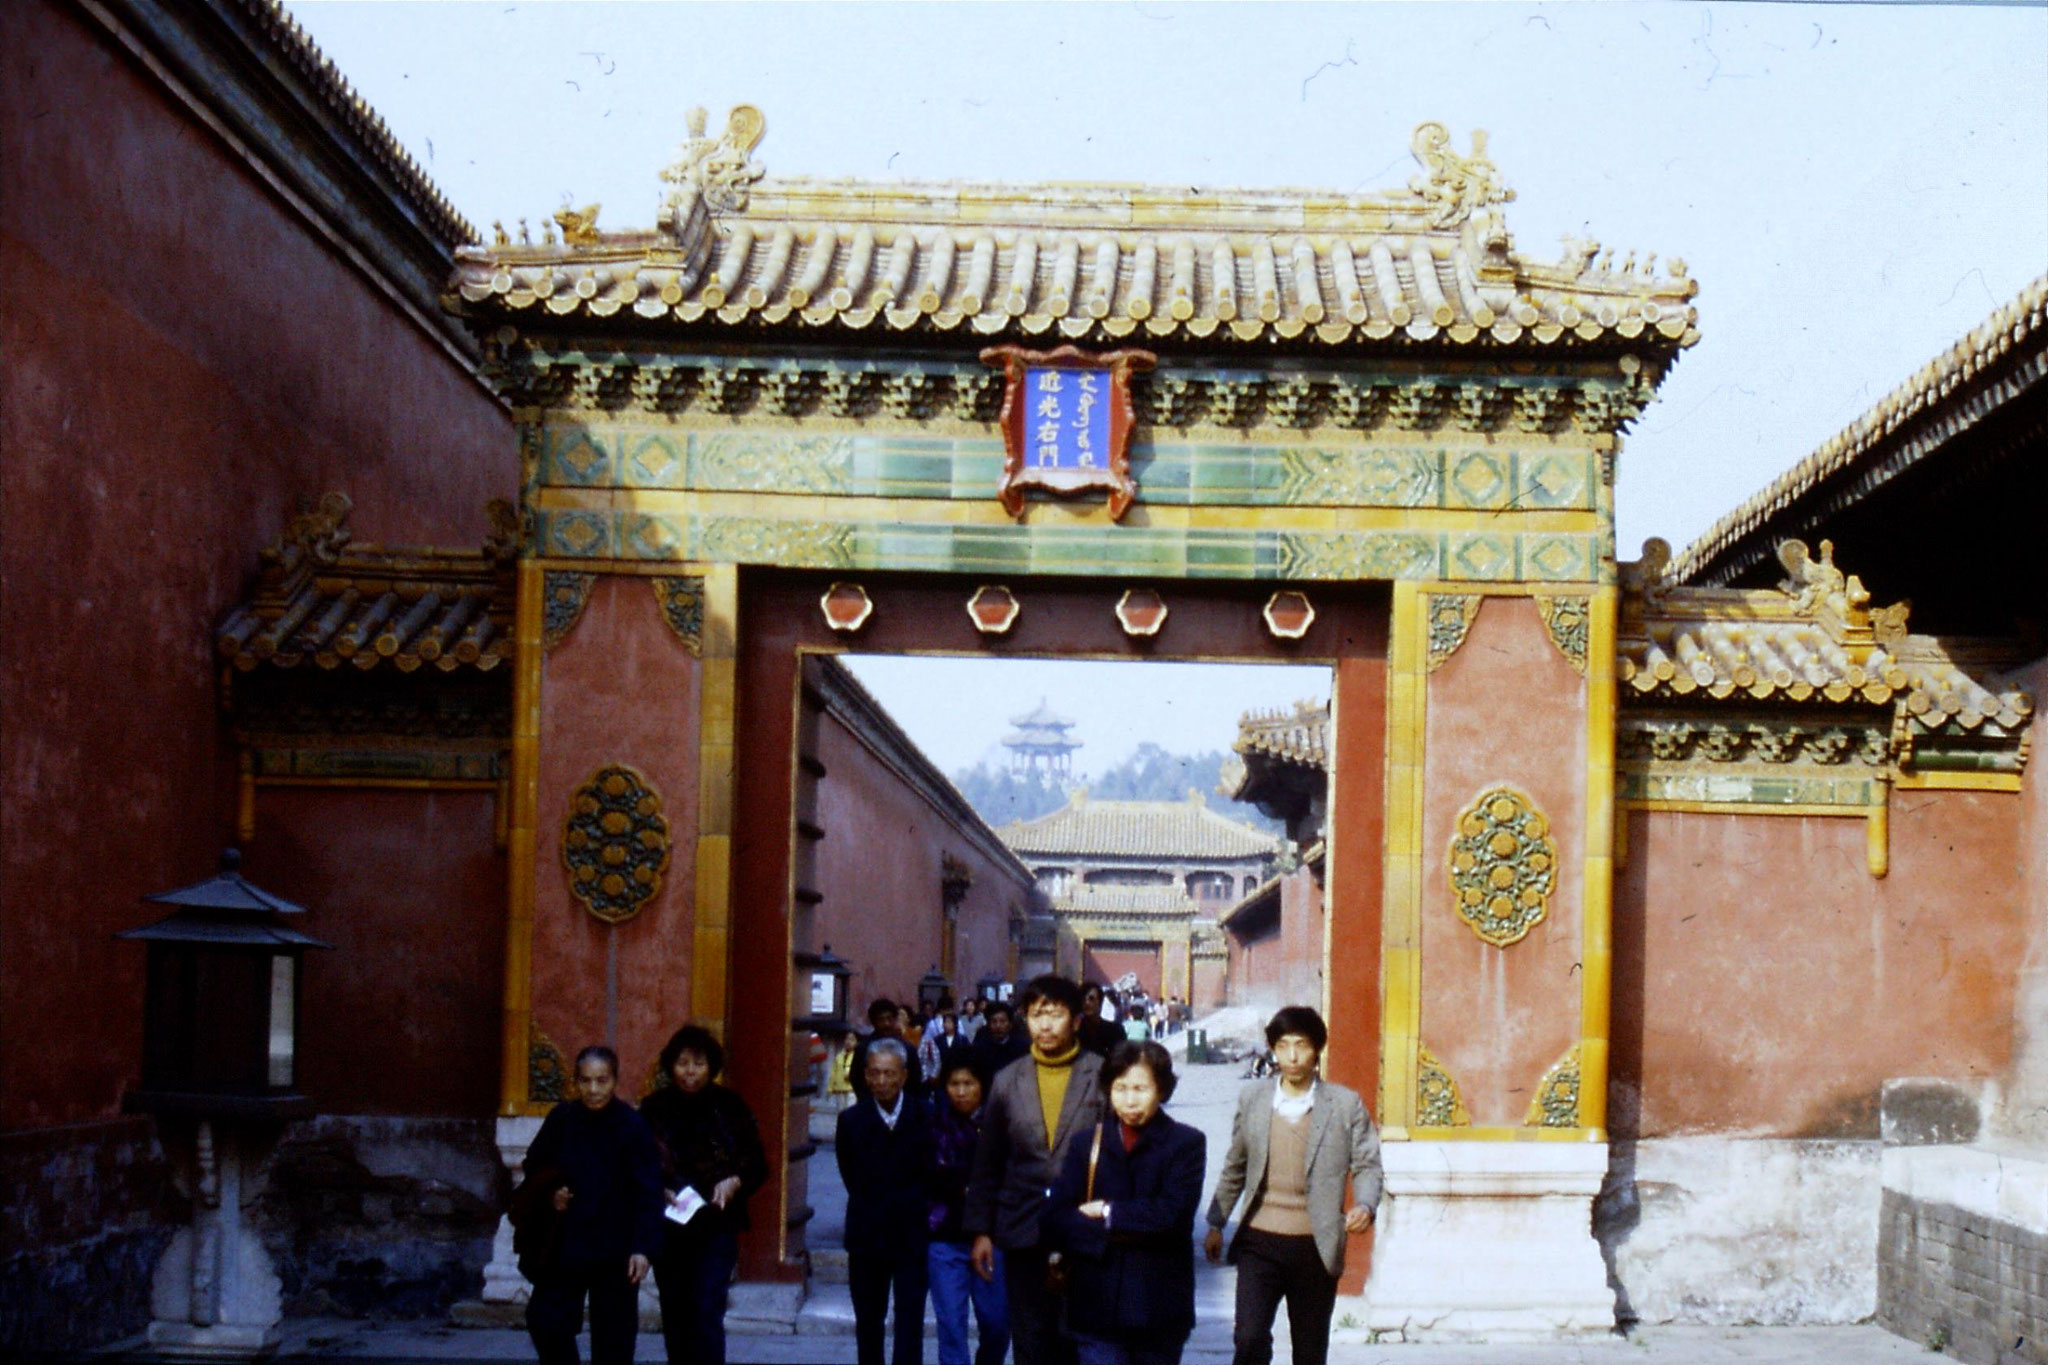 30/10/1988: 36: Forbidden City, towards Coal Hill